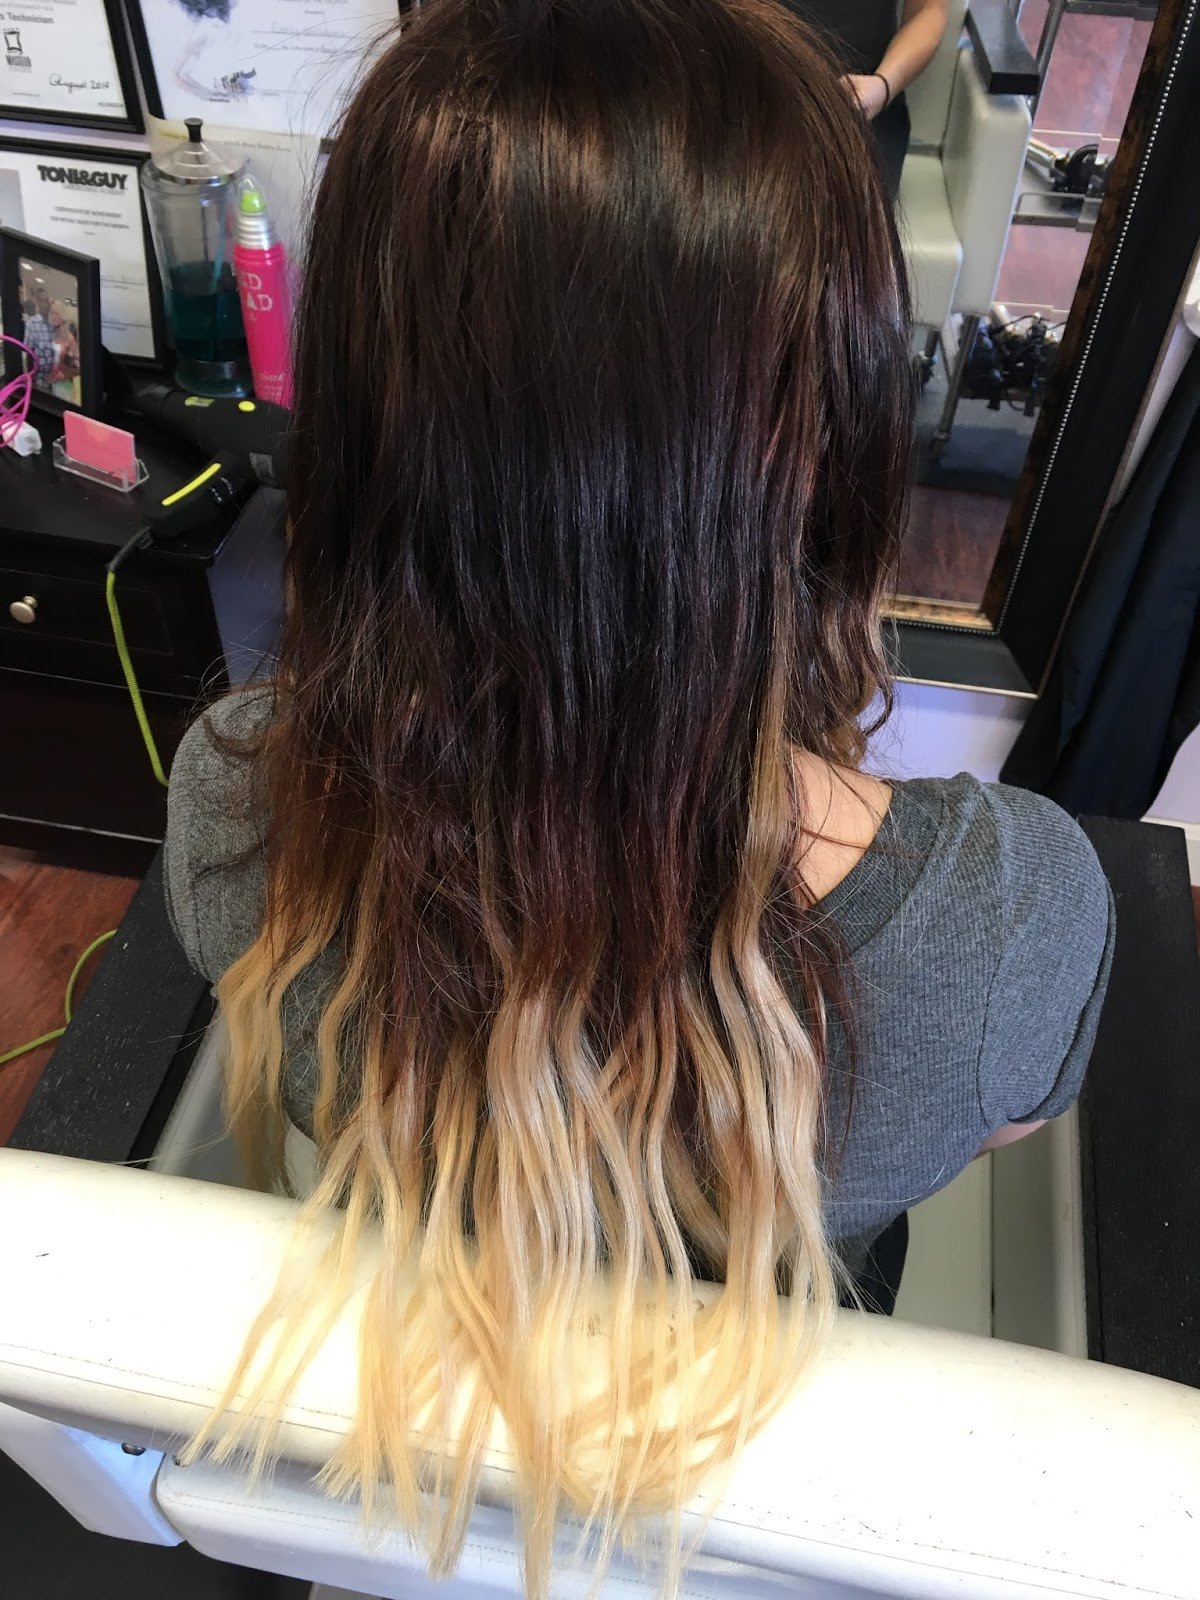 Hair Extensions By Jaclynn Kate Good Hair Extensions Vs Bad Hair